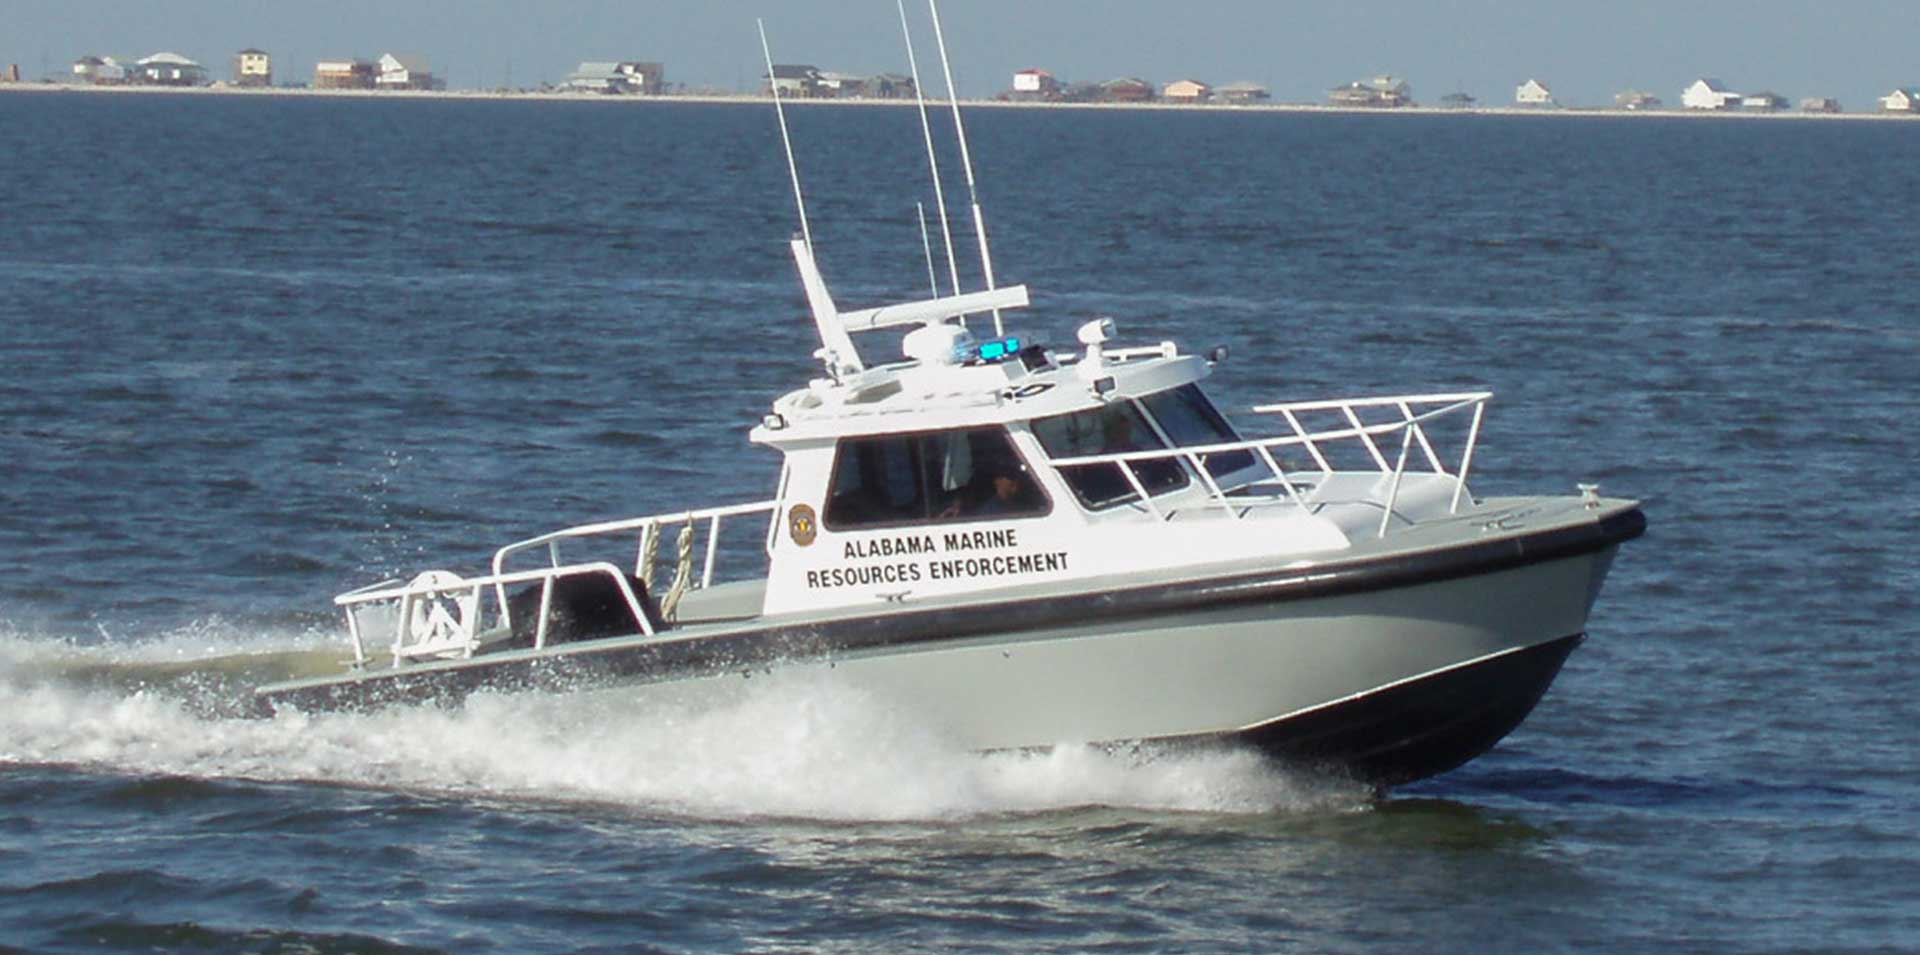 Silver Ships Endeavor Series patrol boat on the water